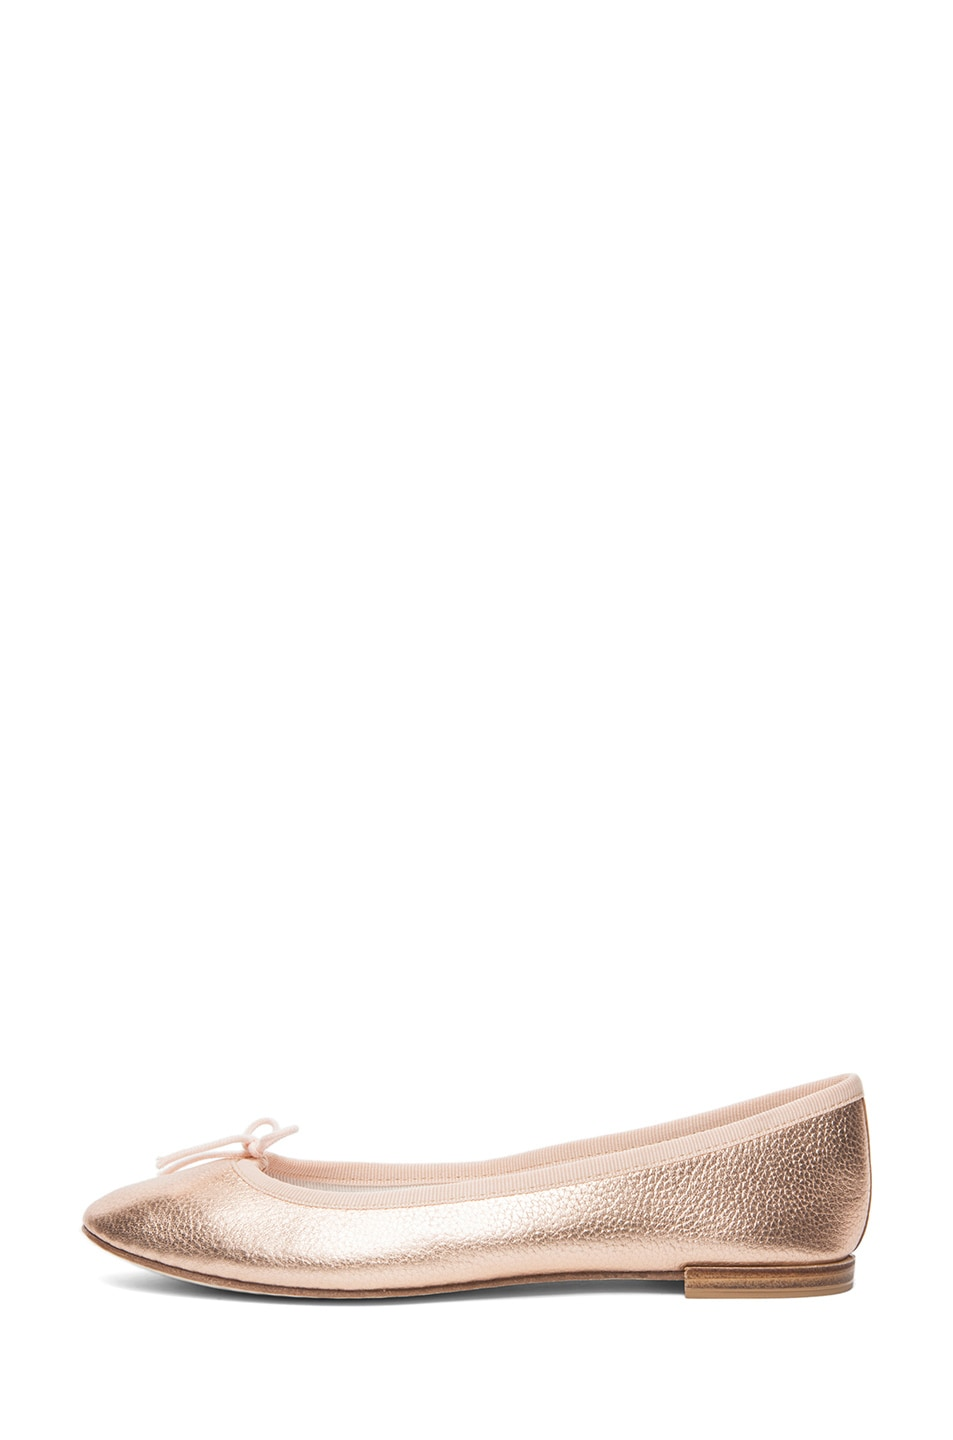 Image 1 of Repetto Distressed Goatskin Flat in Rose Gold